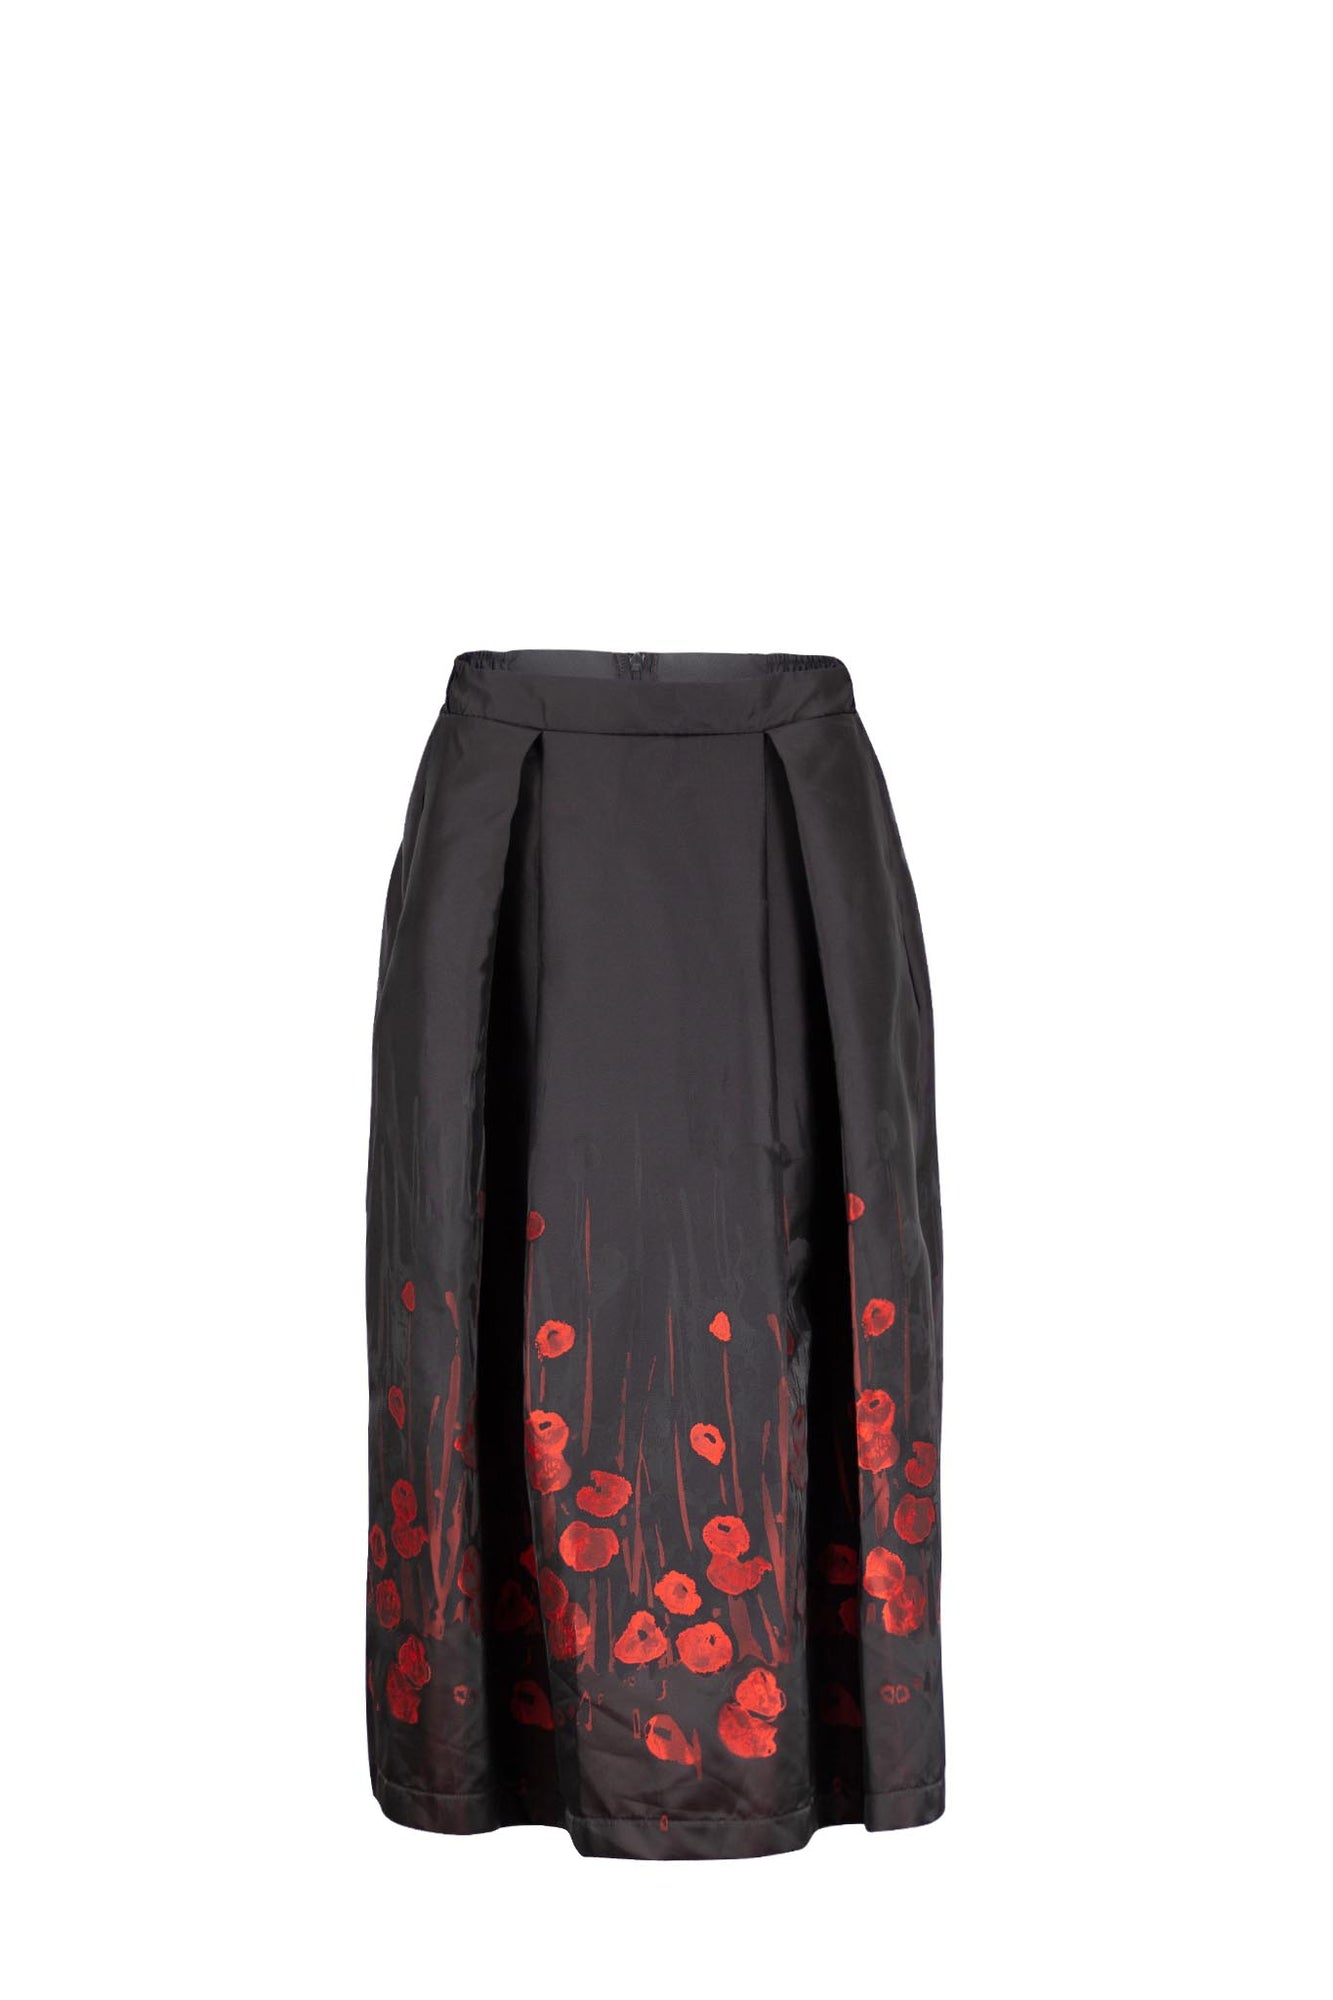 HARRY Black Red Floral